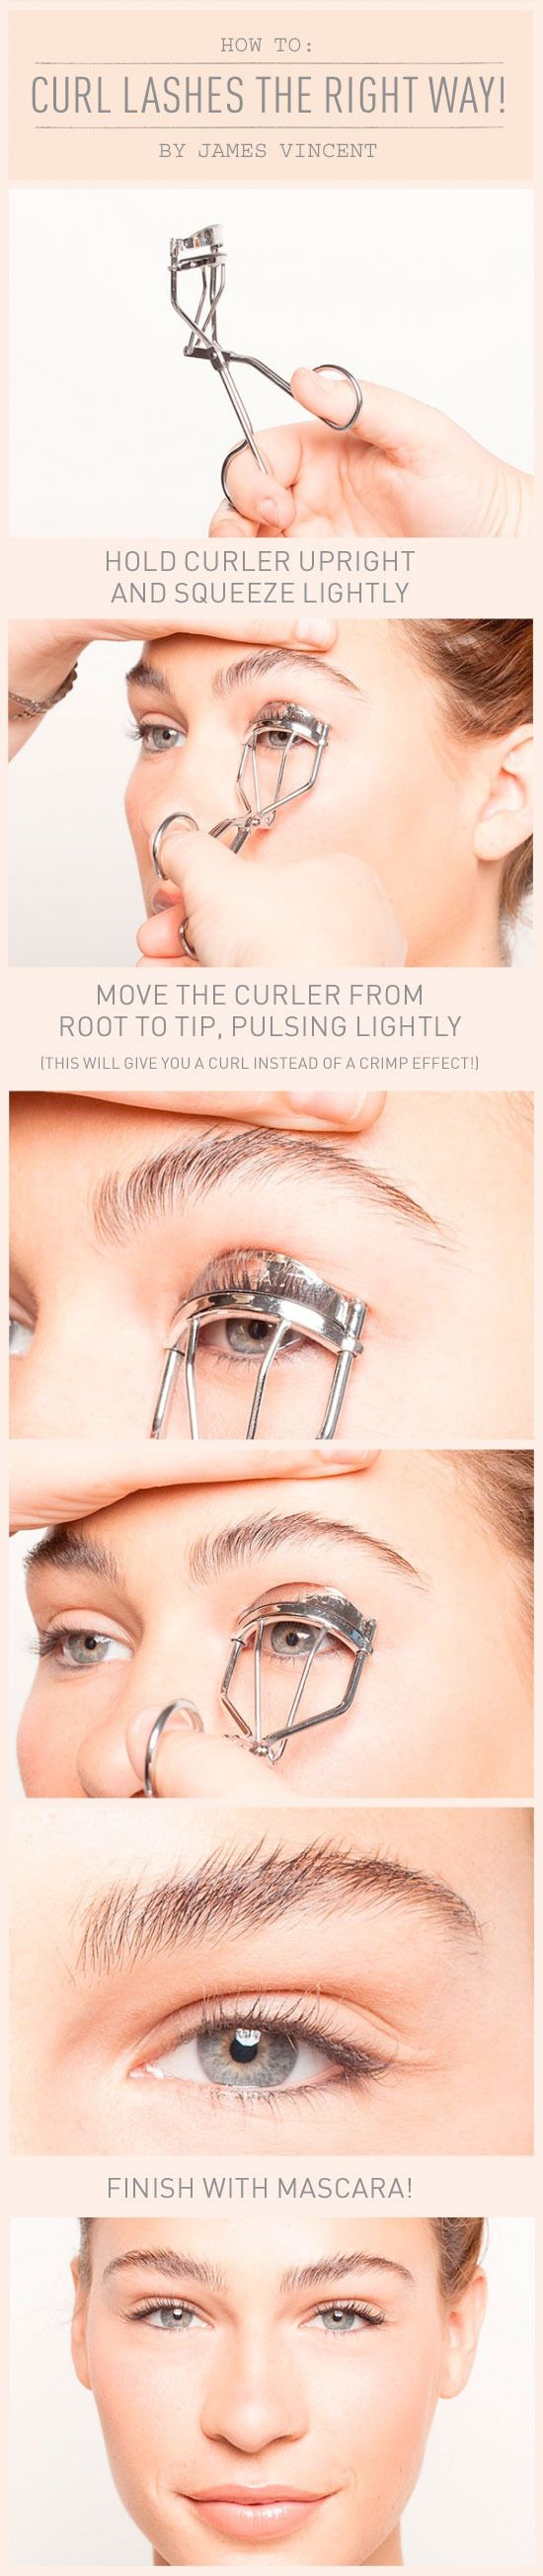 How To Curl Lashes (the Right Way) | Beautylish